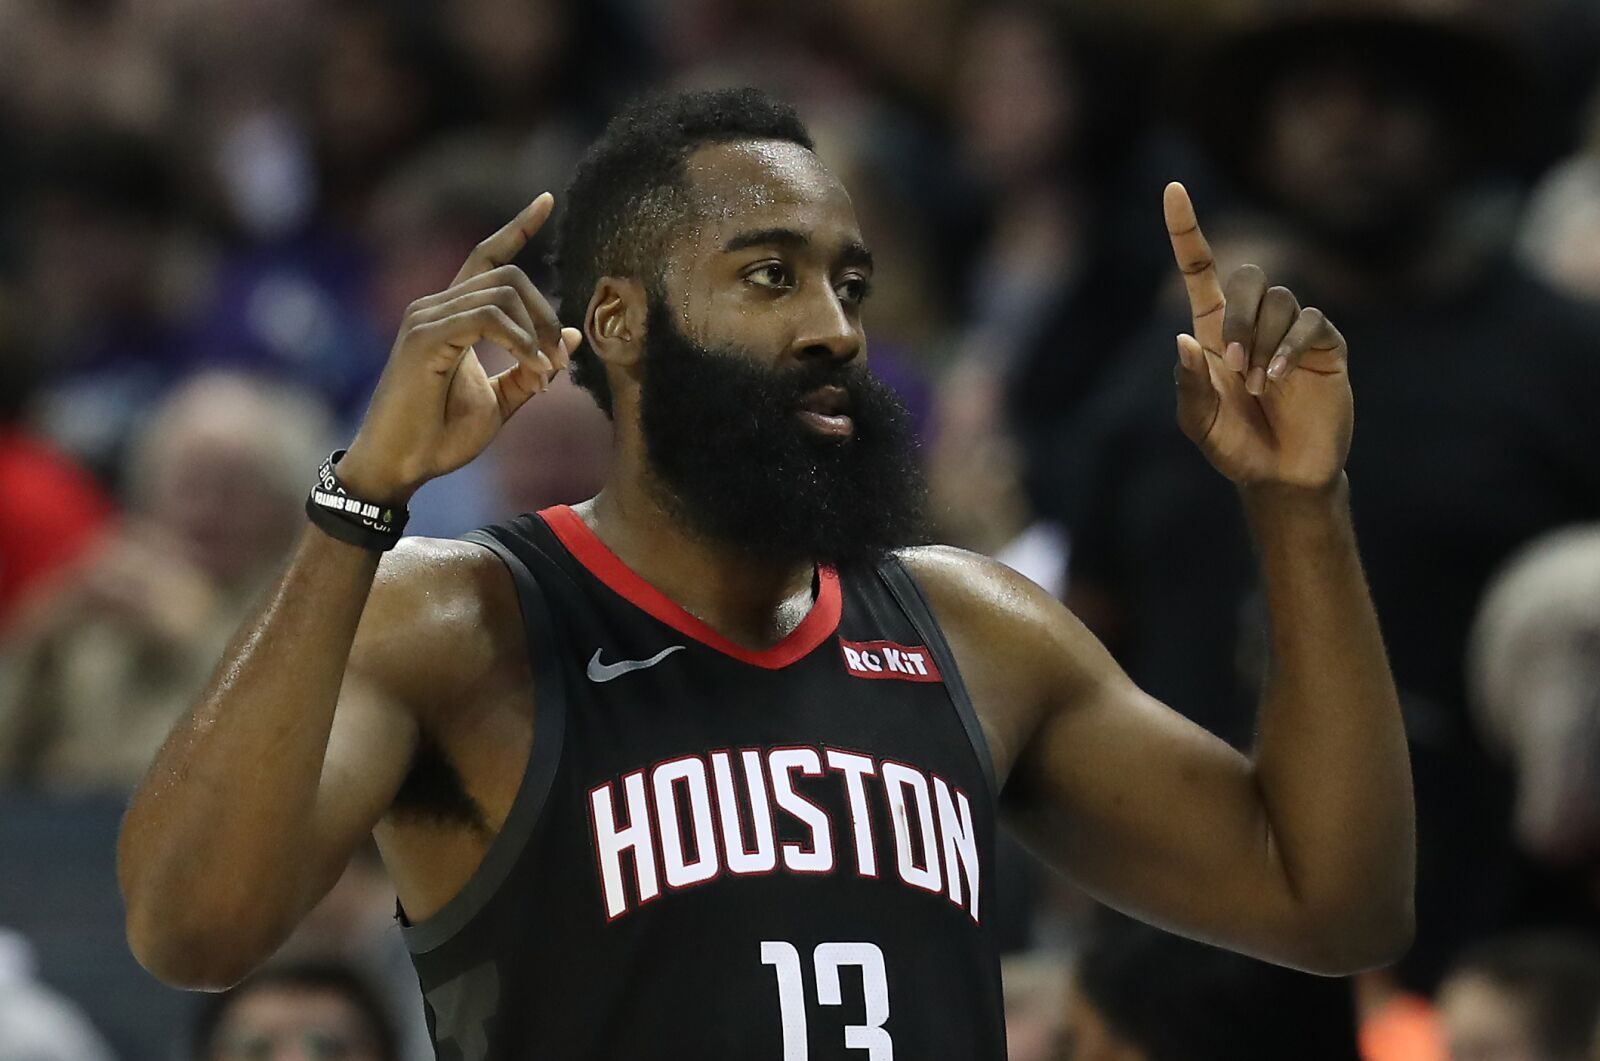 Houston Rockets: James Harden's rarefied performance will earn him MVP